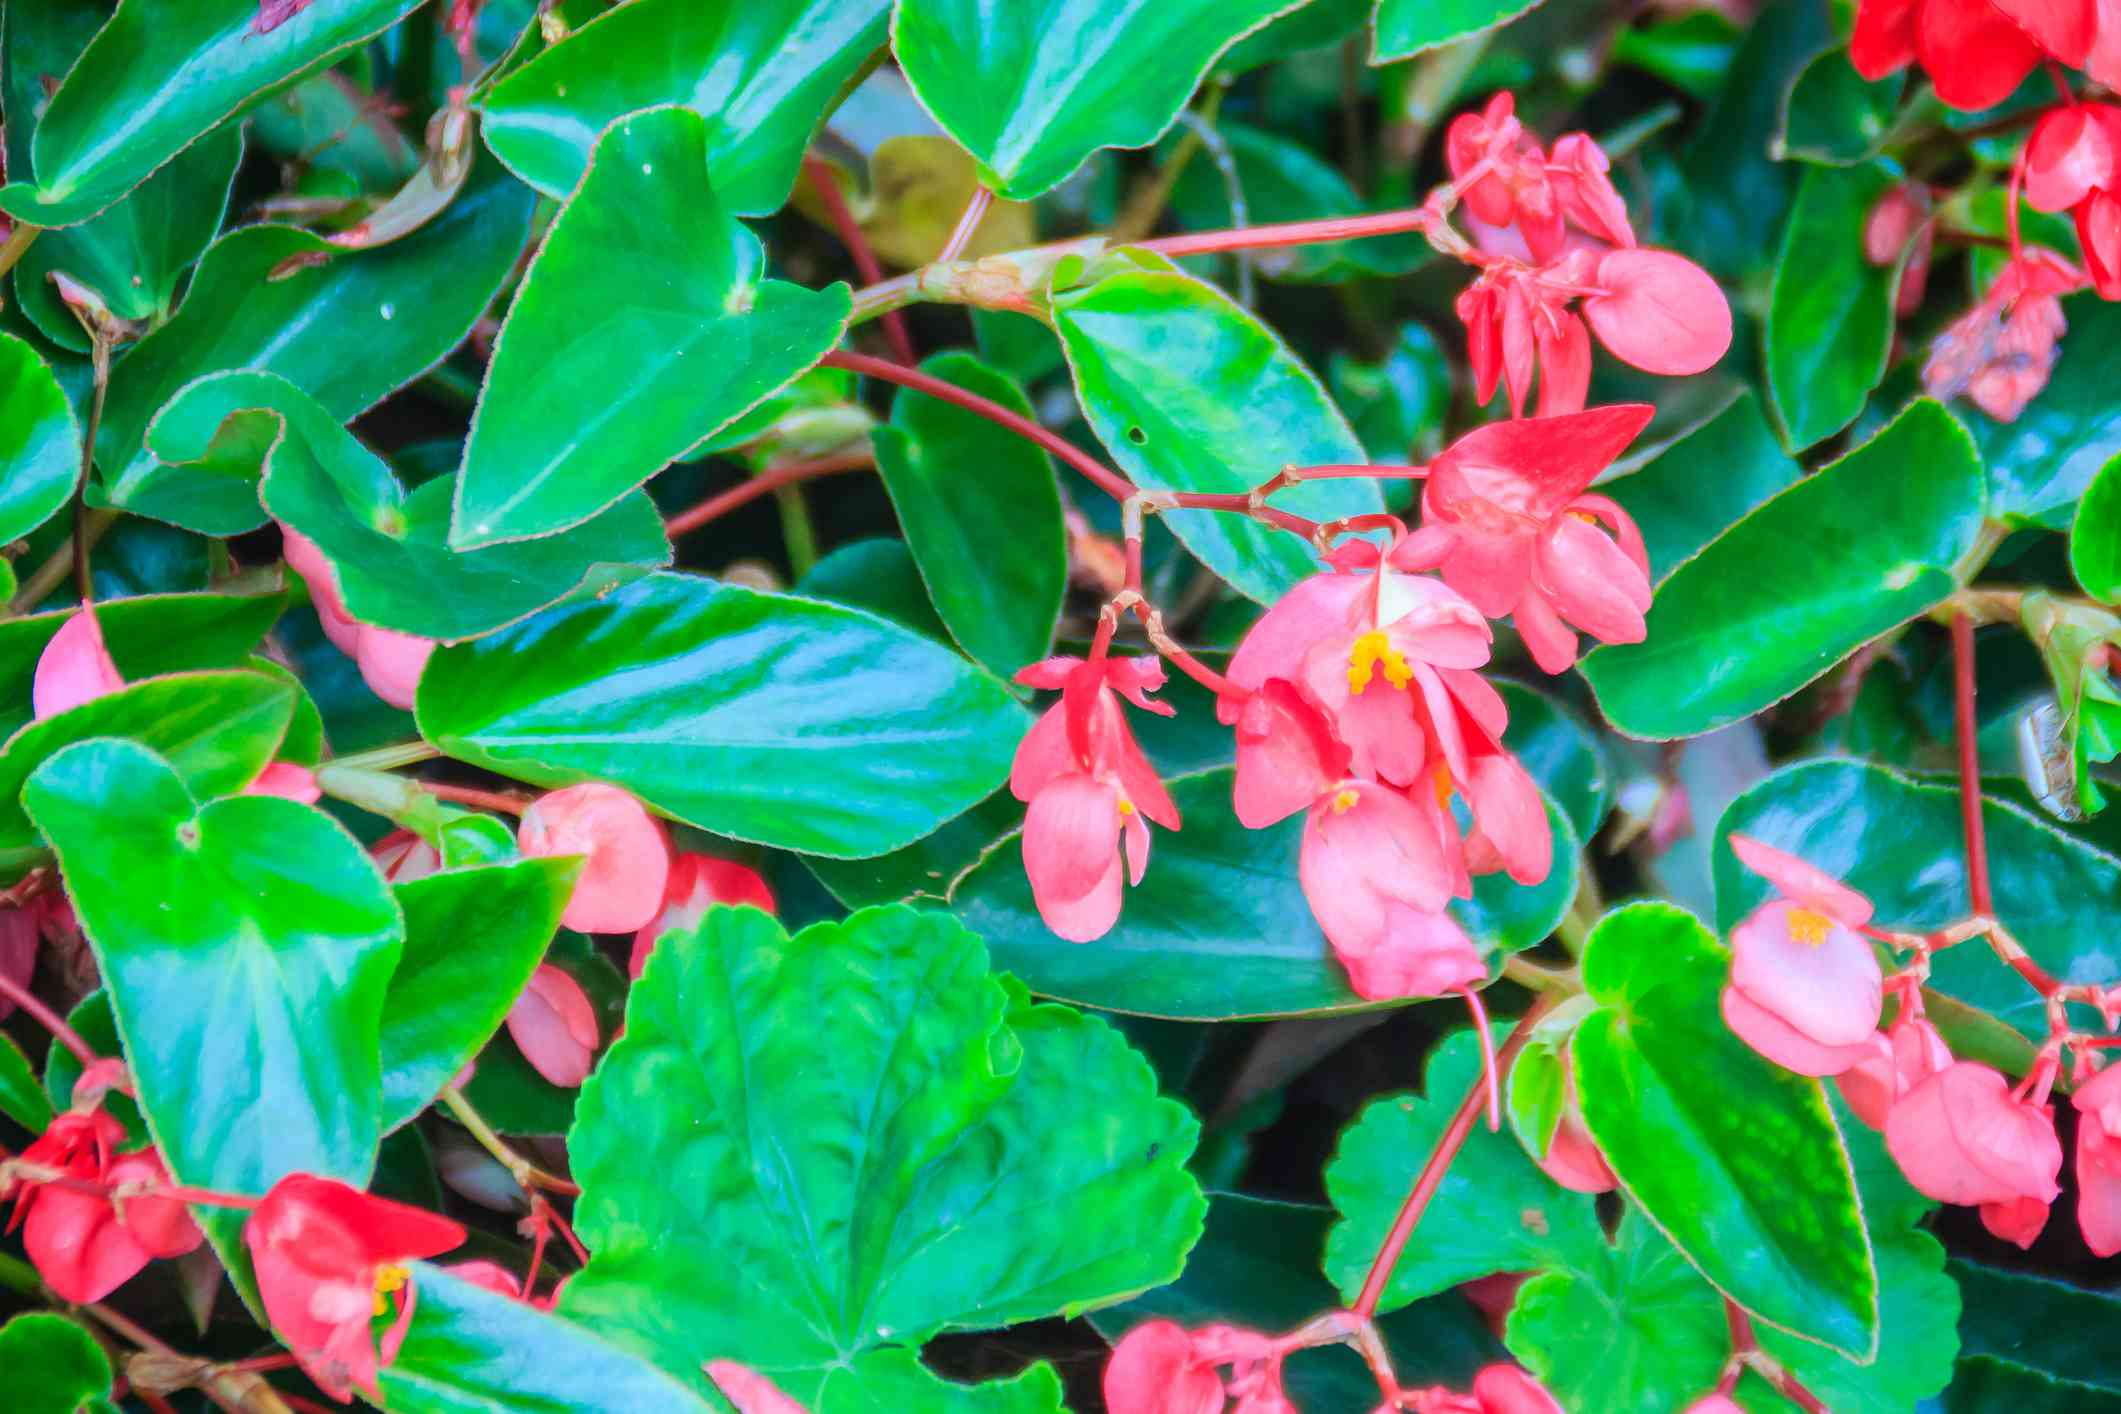 Pink scarlet begonia (Begonia coccinea) flower bush with green glossy background. Begonia coccinea is a plant in the begonia family, Begoniaceae. It is native to the Atlantic Forest of Brazil.